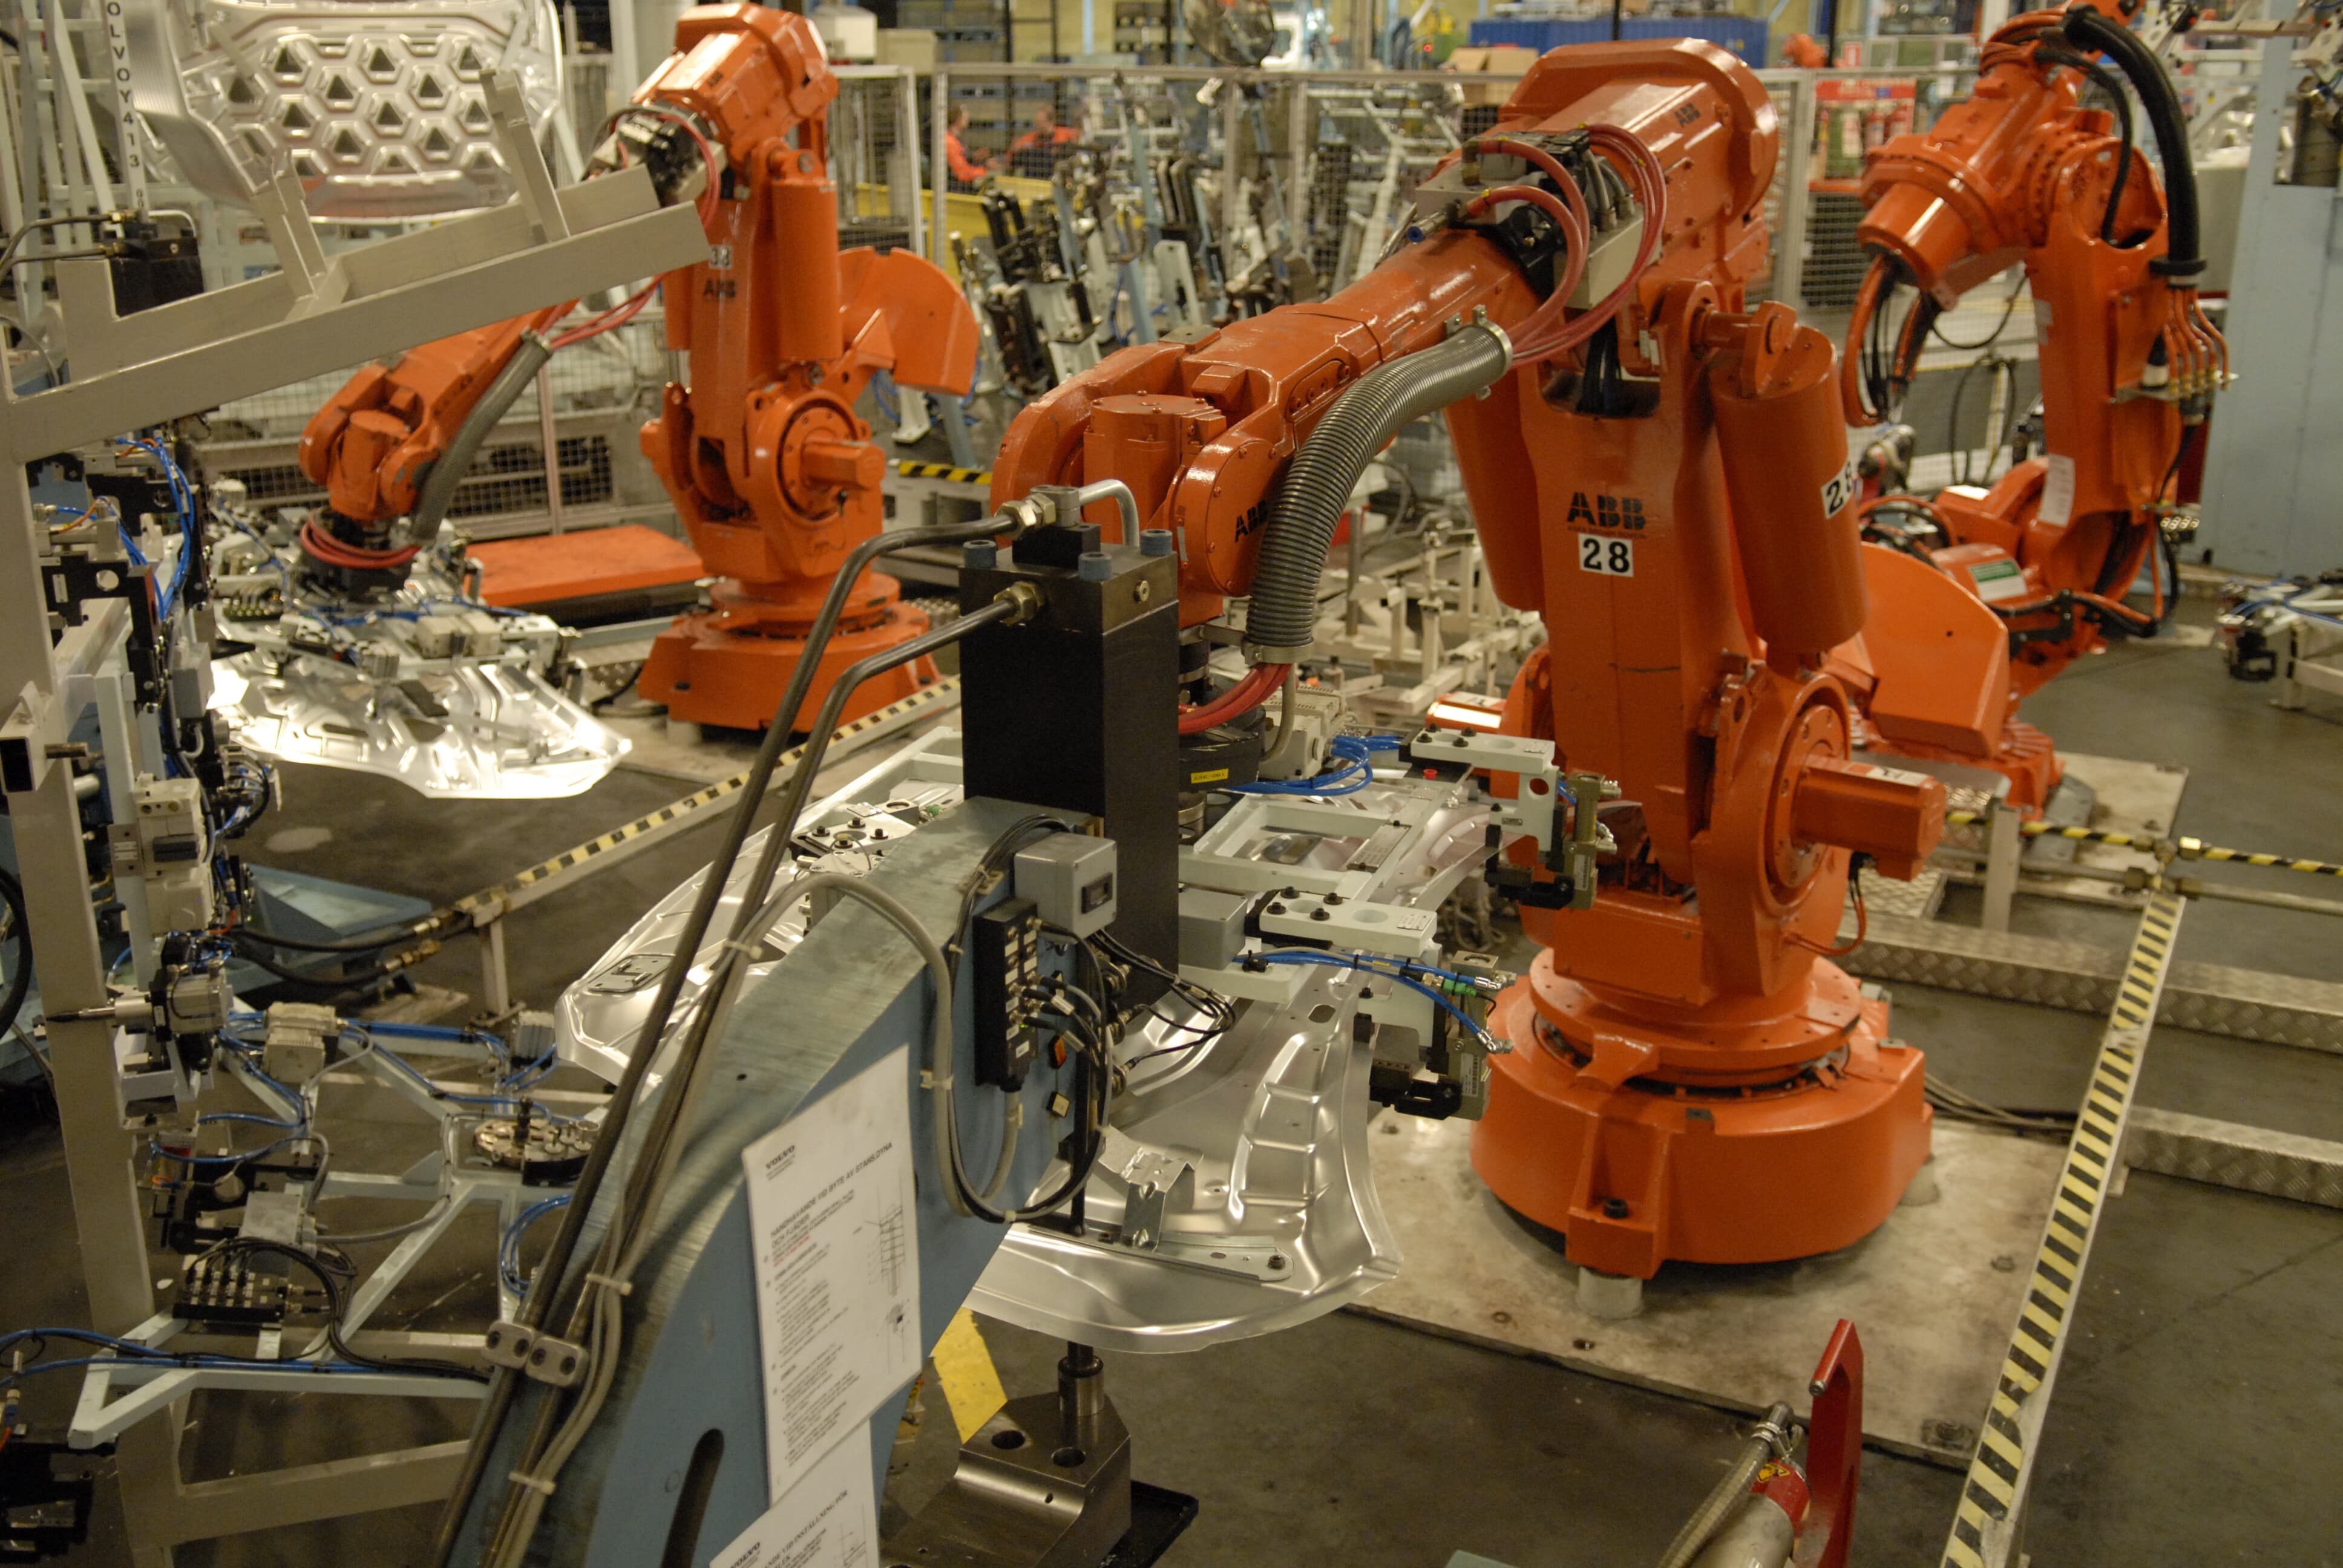 ABB Integrated dresspack for the ABB Robots at the Volvo cars in Olofstrom